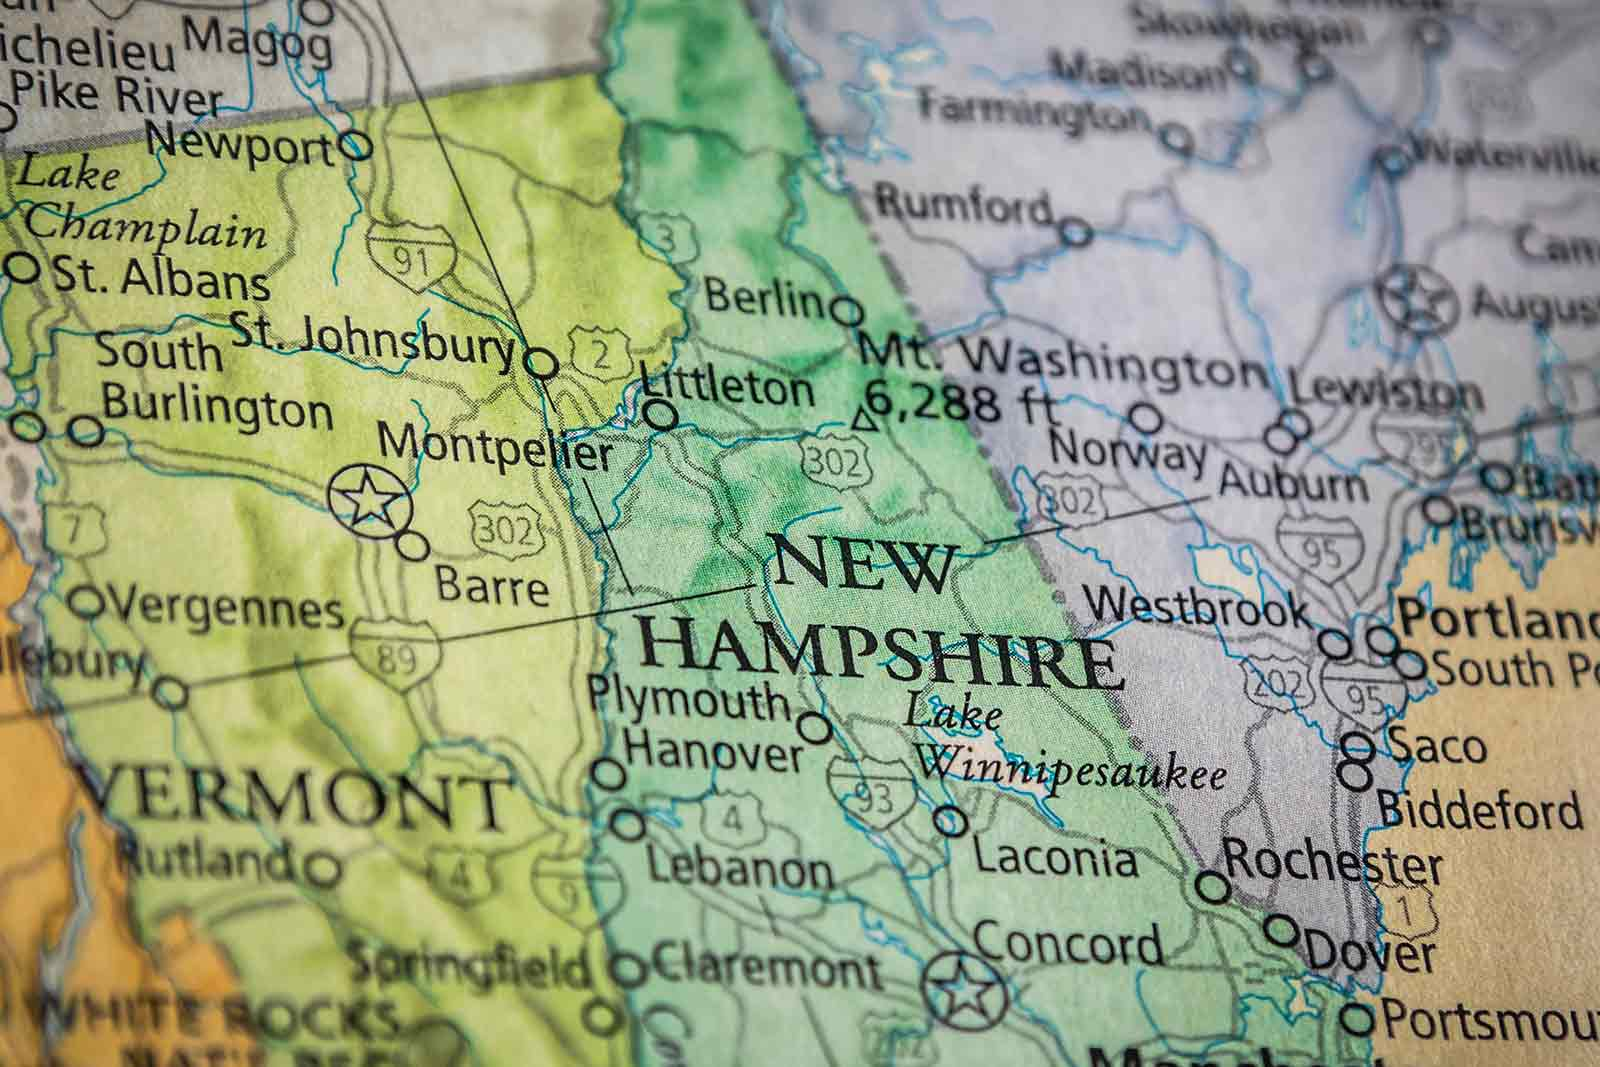 Old Historical City, County and State Maps of New Hampshire